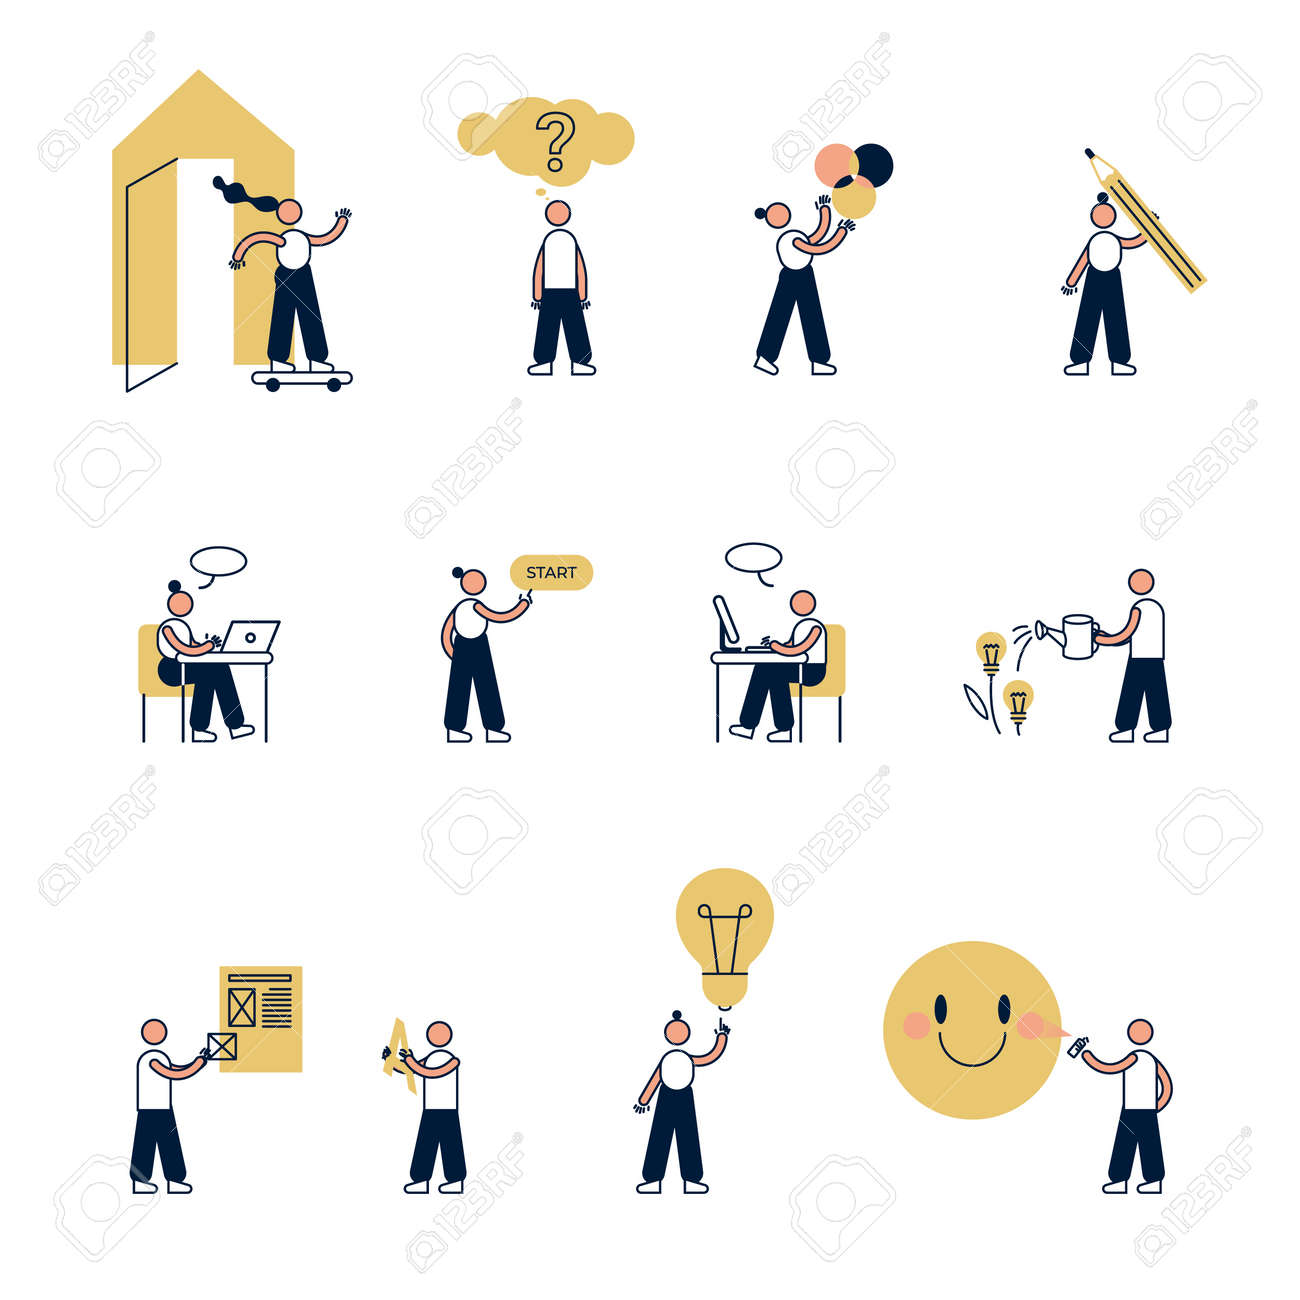 Infographic illustration, The main stages of the creative design process, small people in action vector. Graphic editor computer app icon set. - 157859010